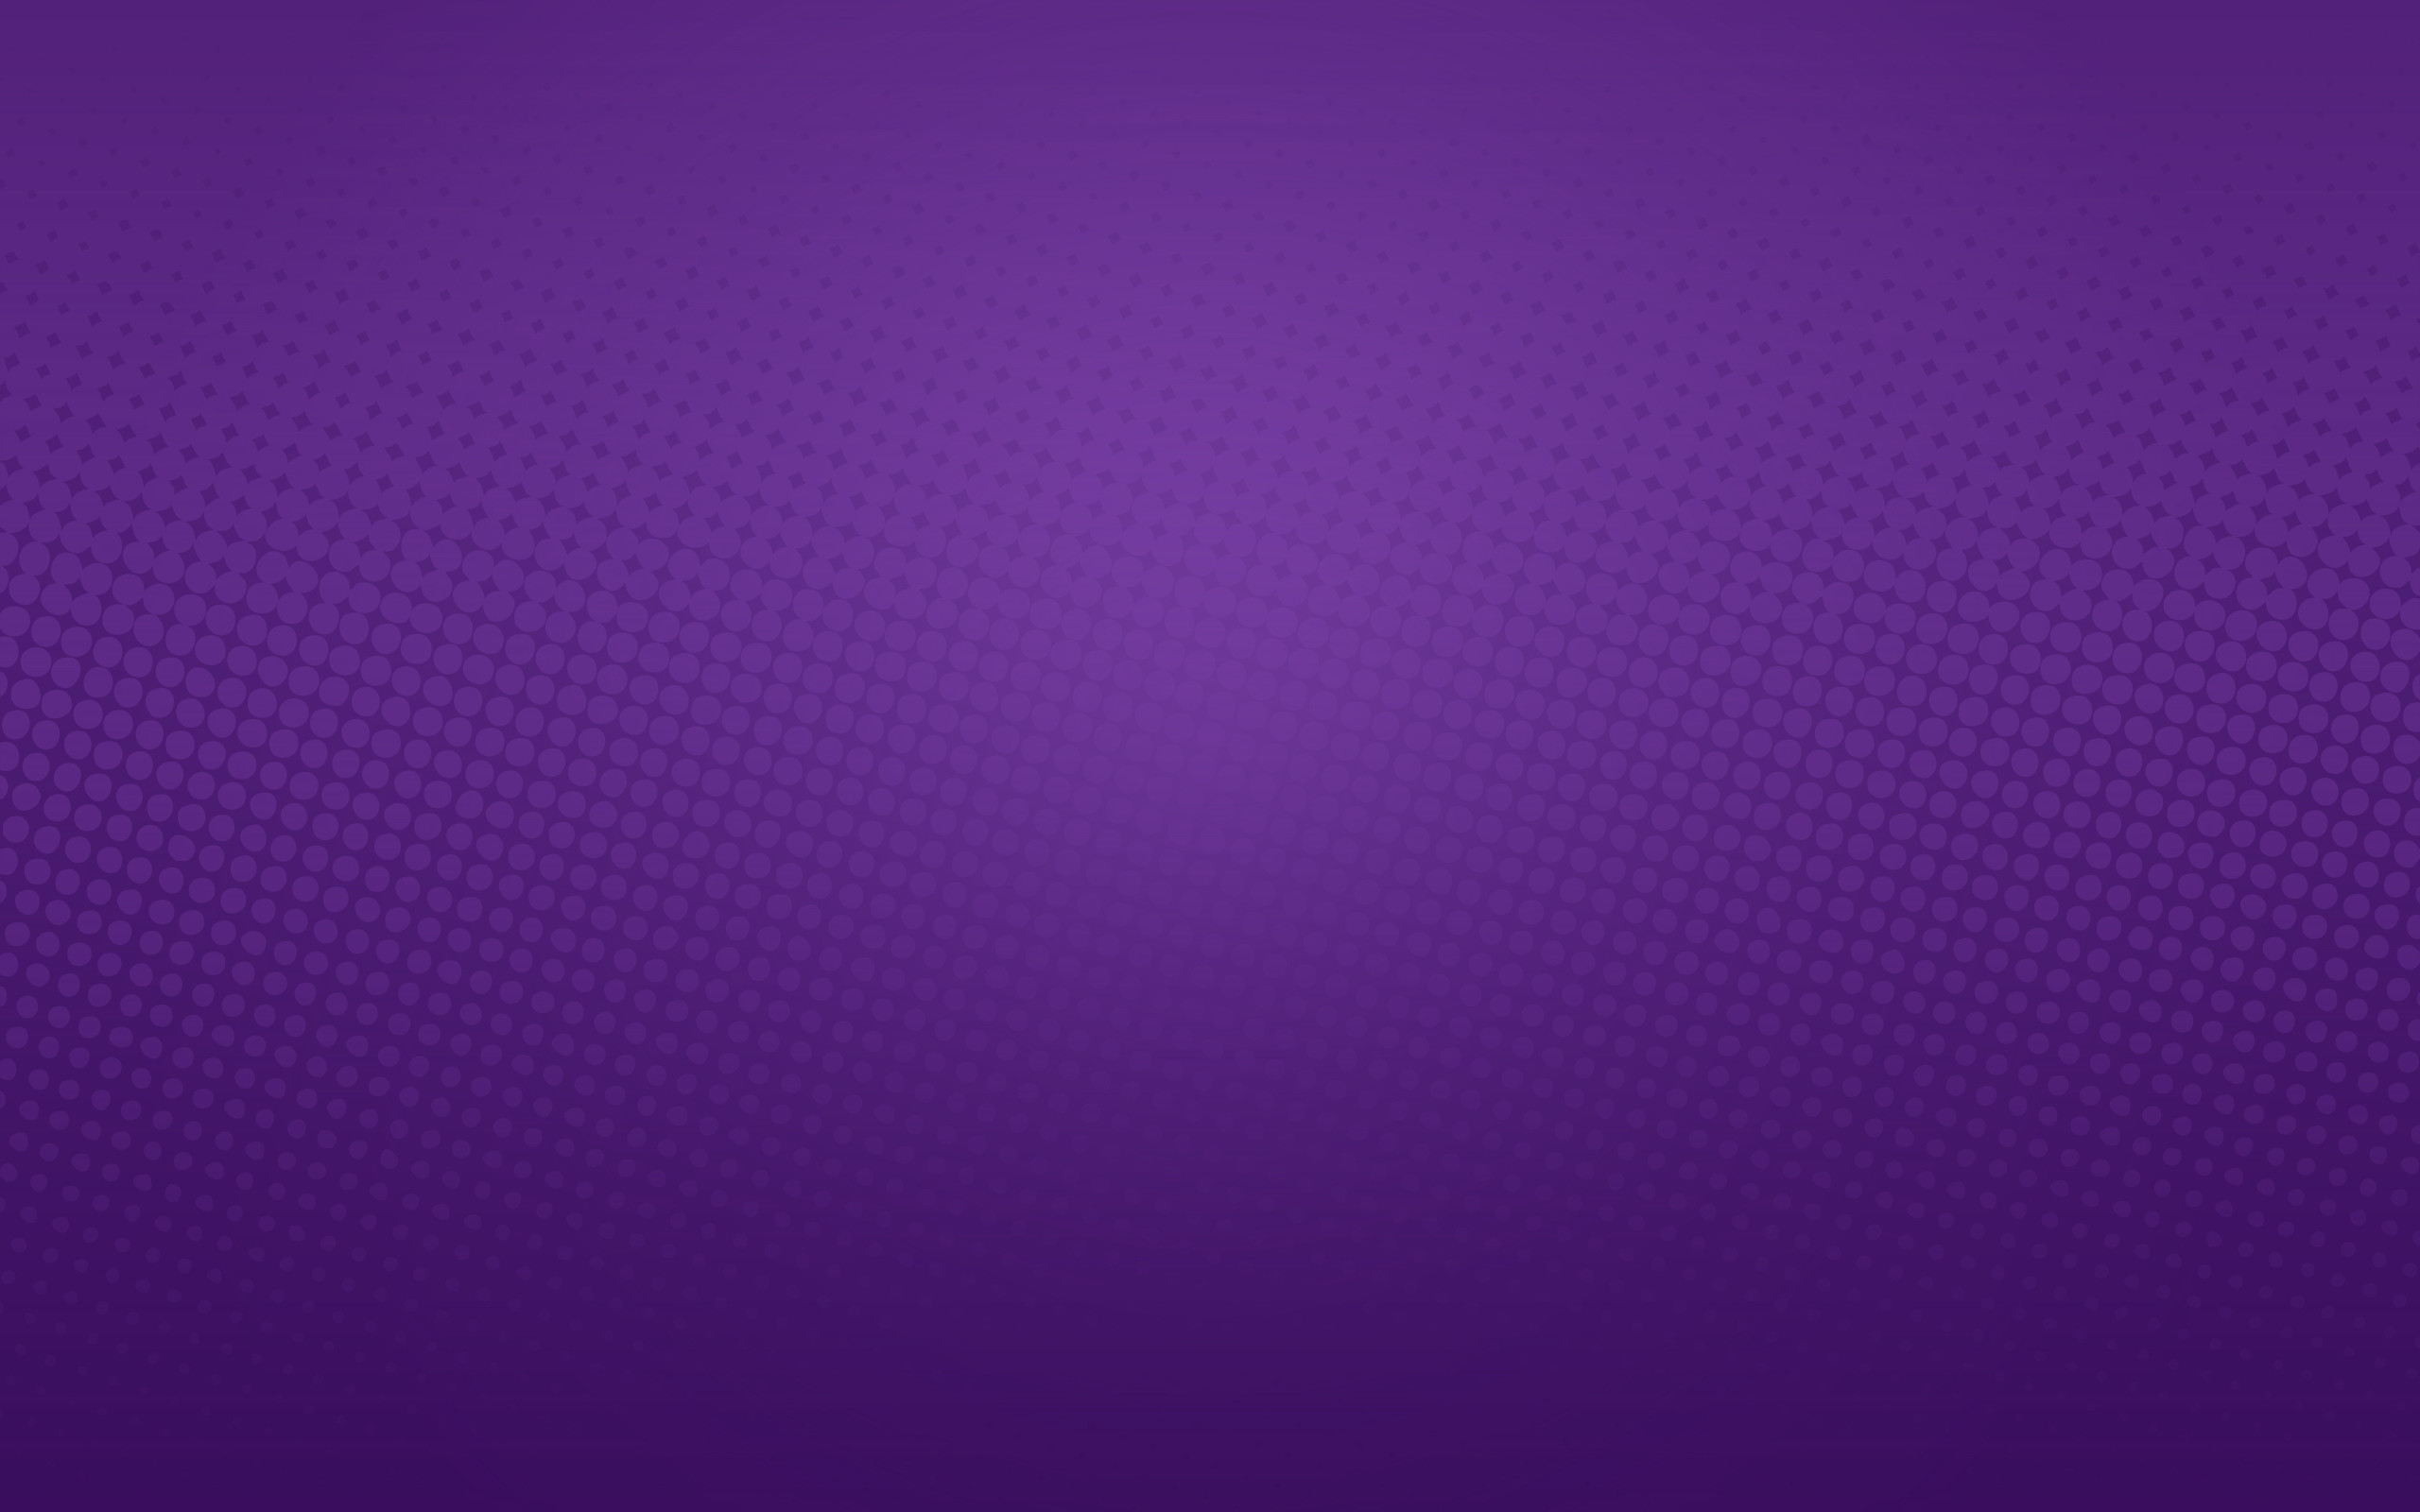 2560x1600 Simple Purple Wallpaper 40203